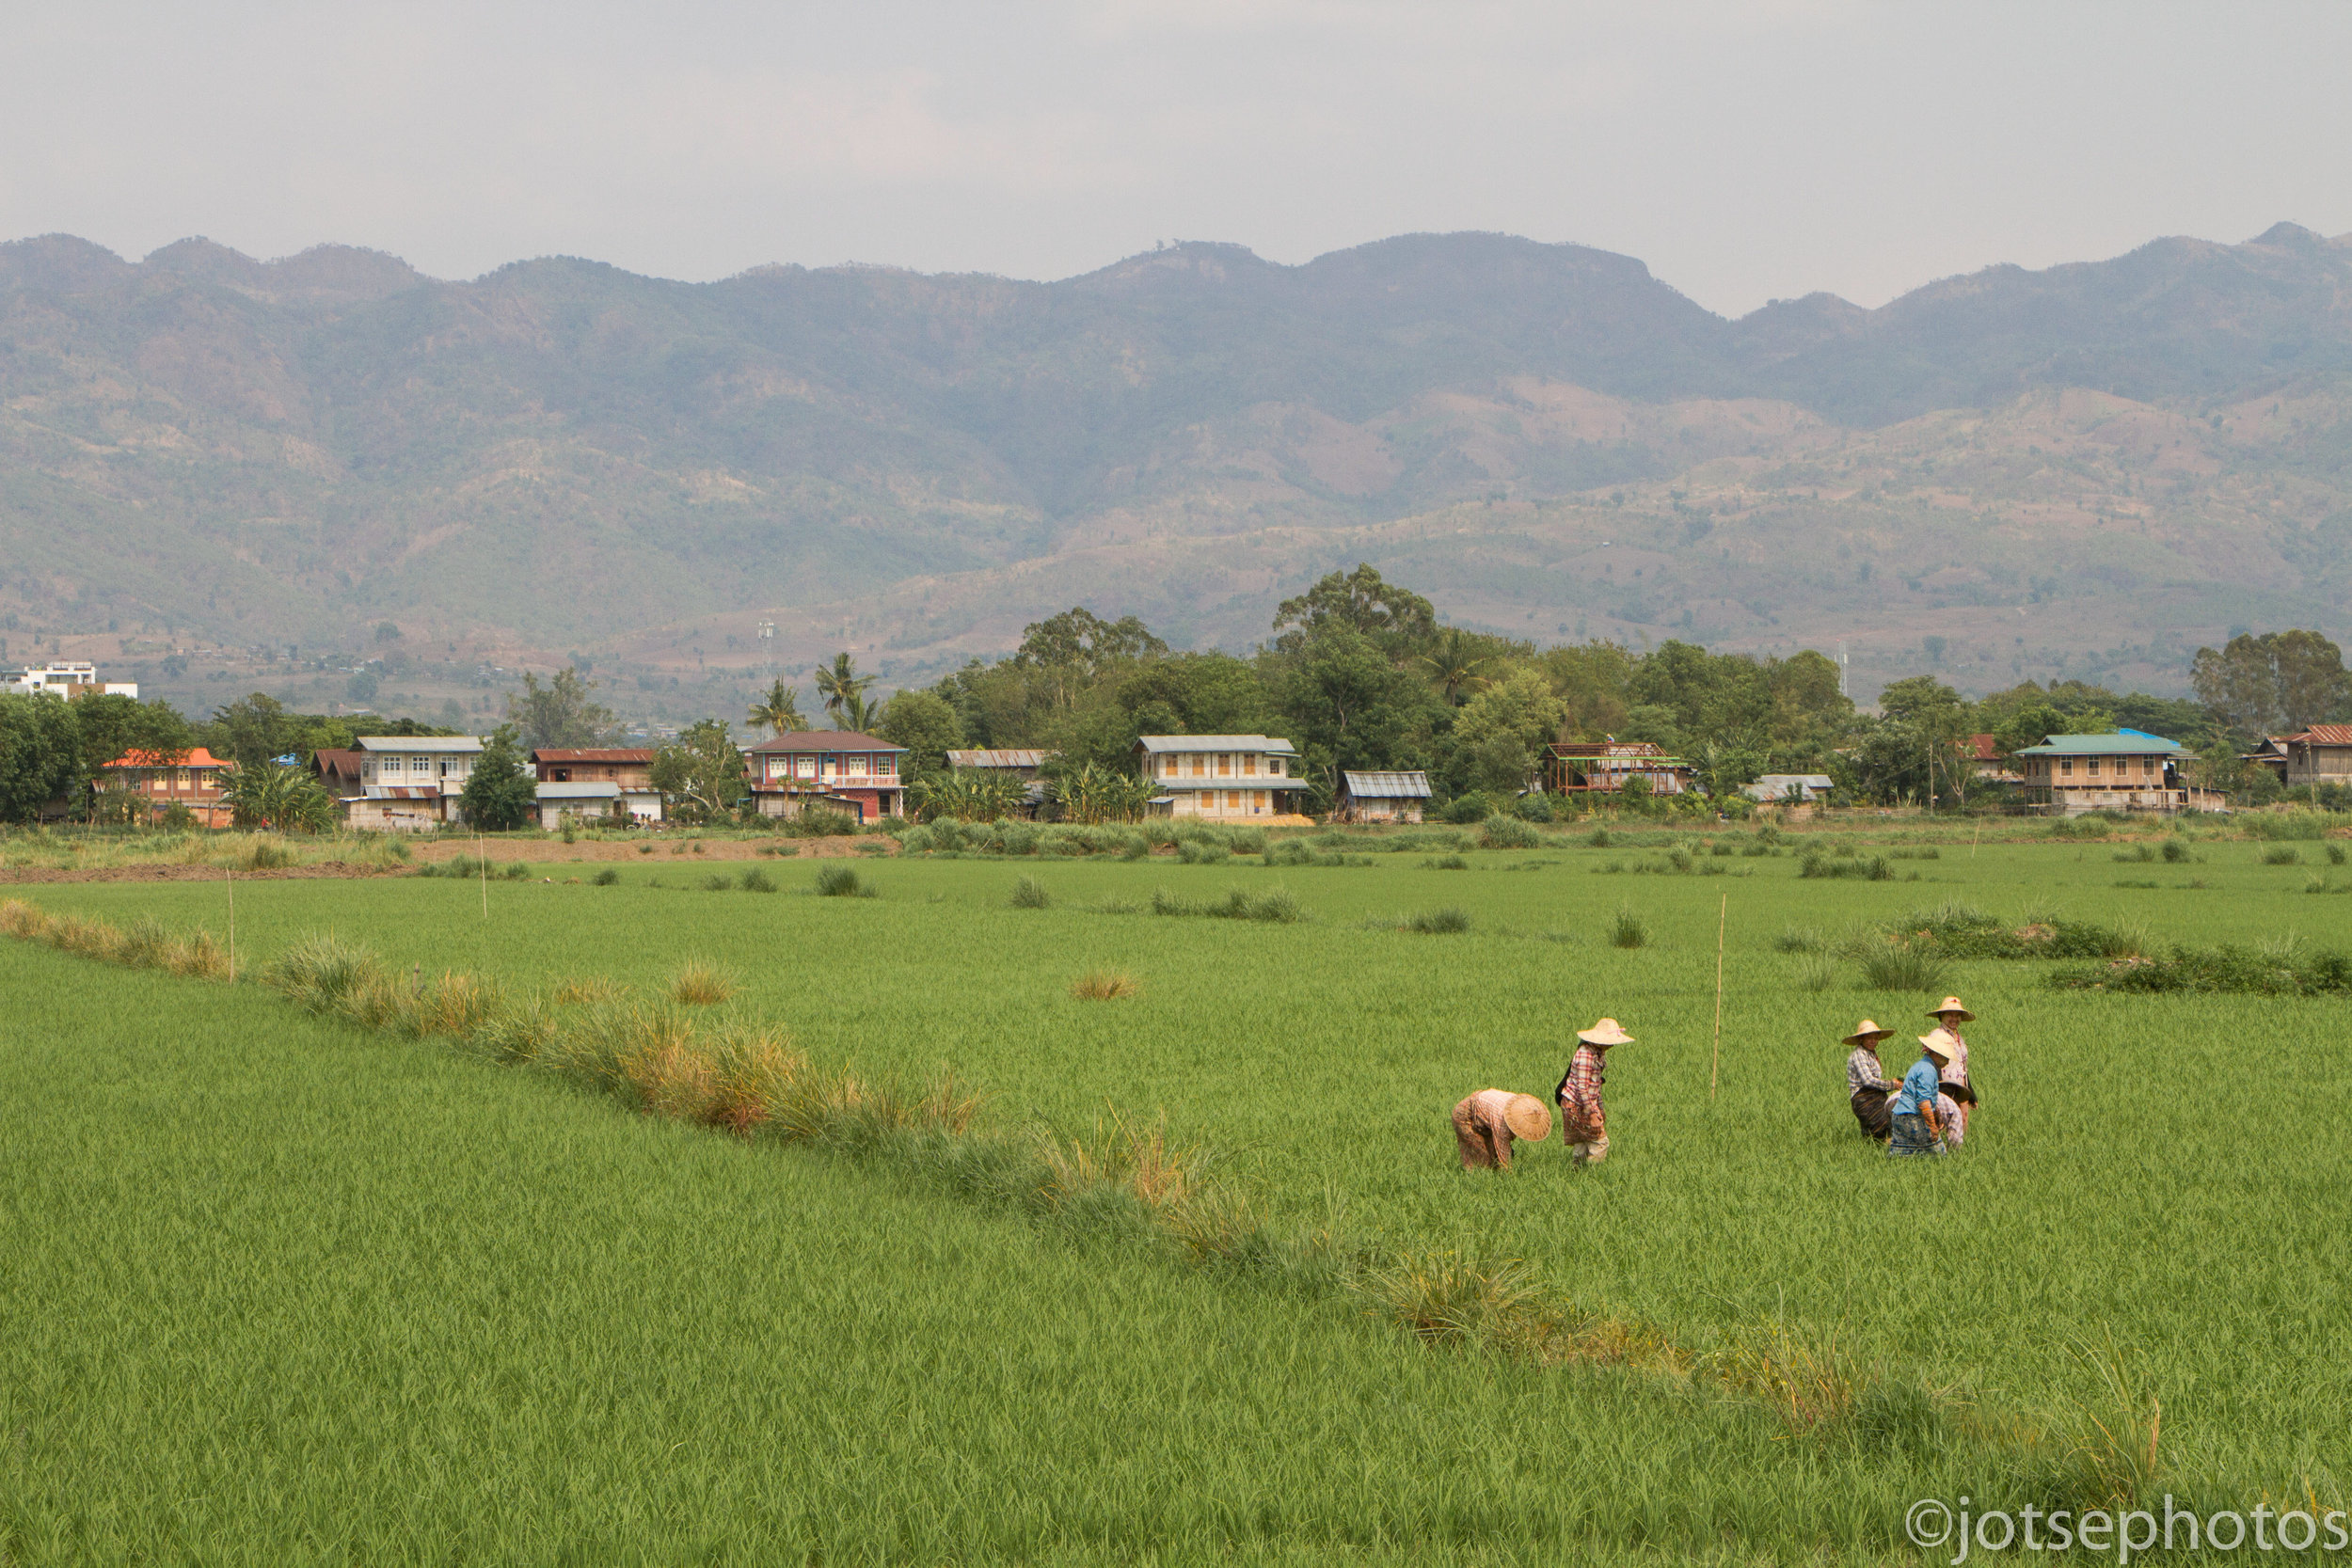 countryside-near-nyuang-shwe_26931012650_o.jpg